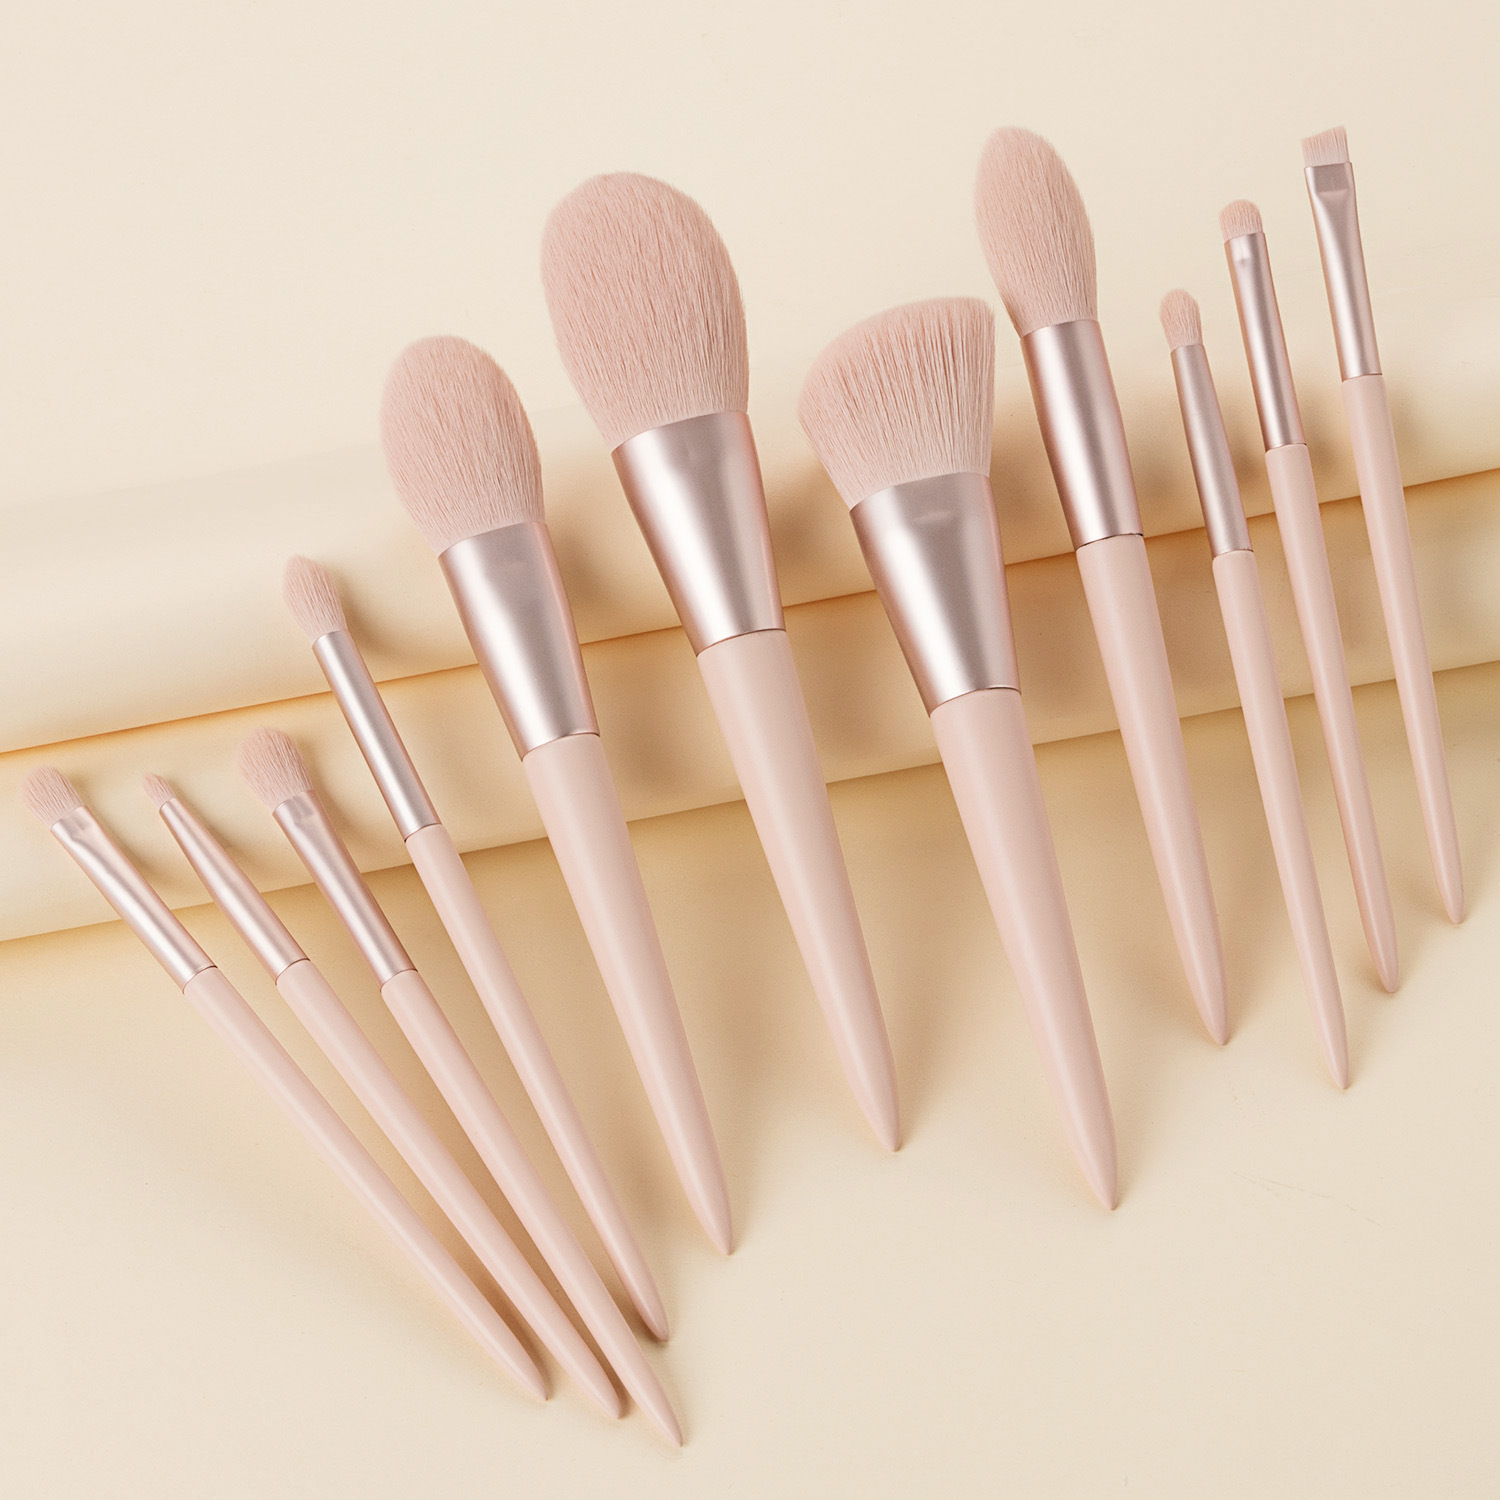 2020 New Style 11 pieces <strong>high</strong> <strong>quality</strong> private label <strong>makeup</strong> <strong>brush</strong> with a bag